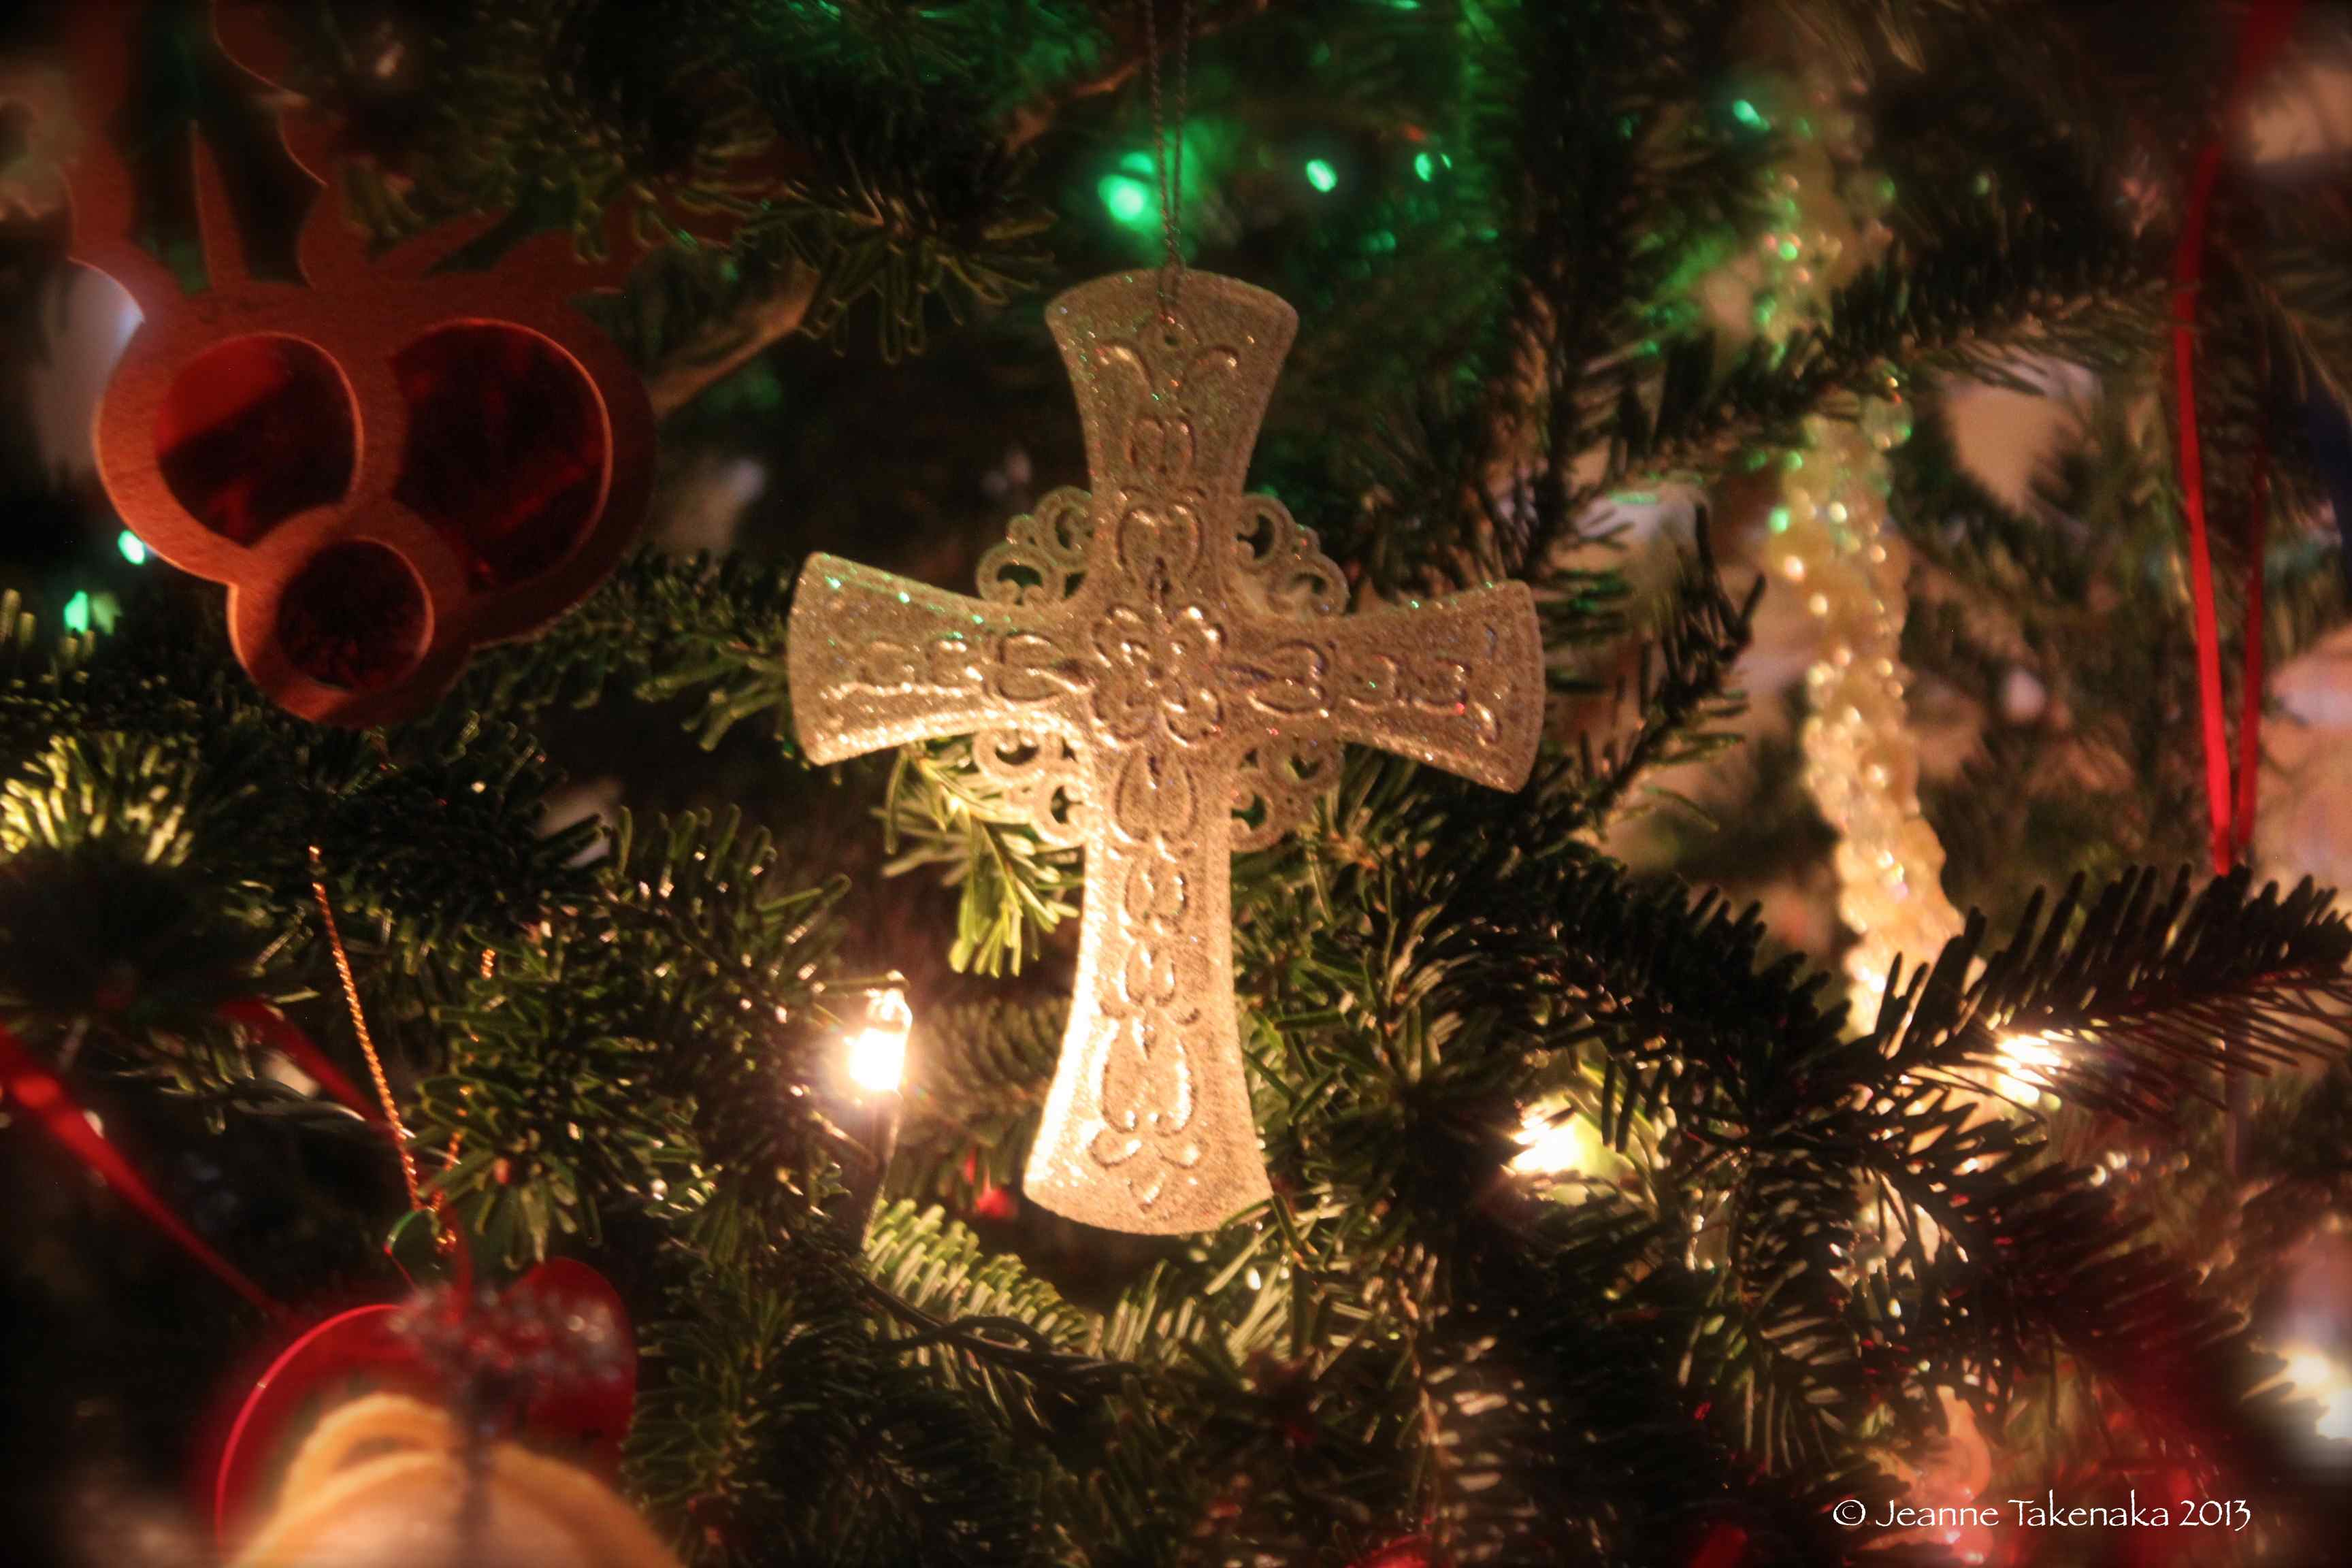 Christmas cross jesus the chaos of christmas doing or being in the